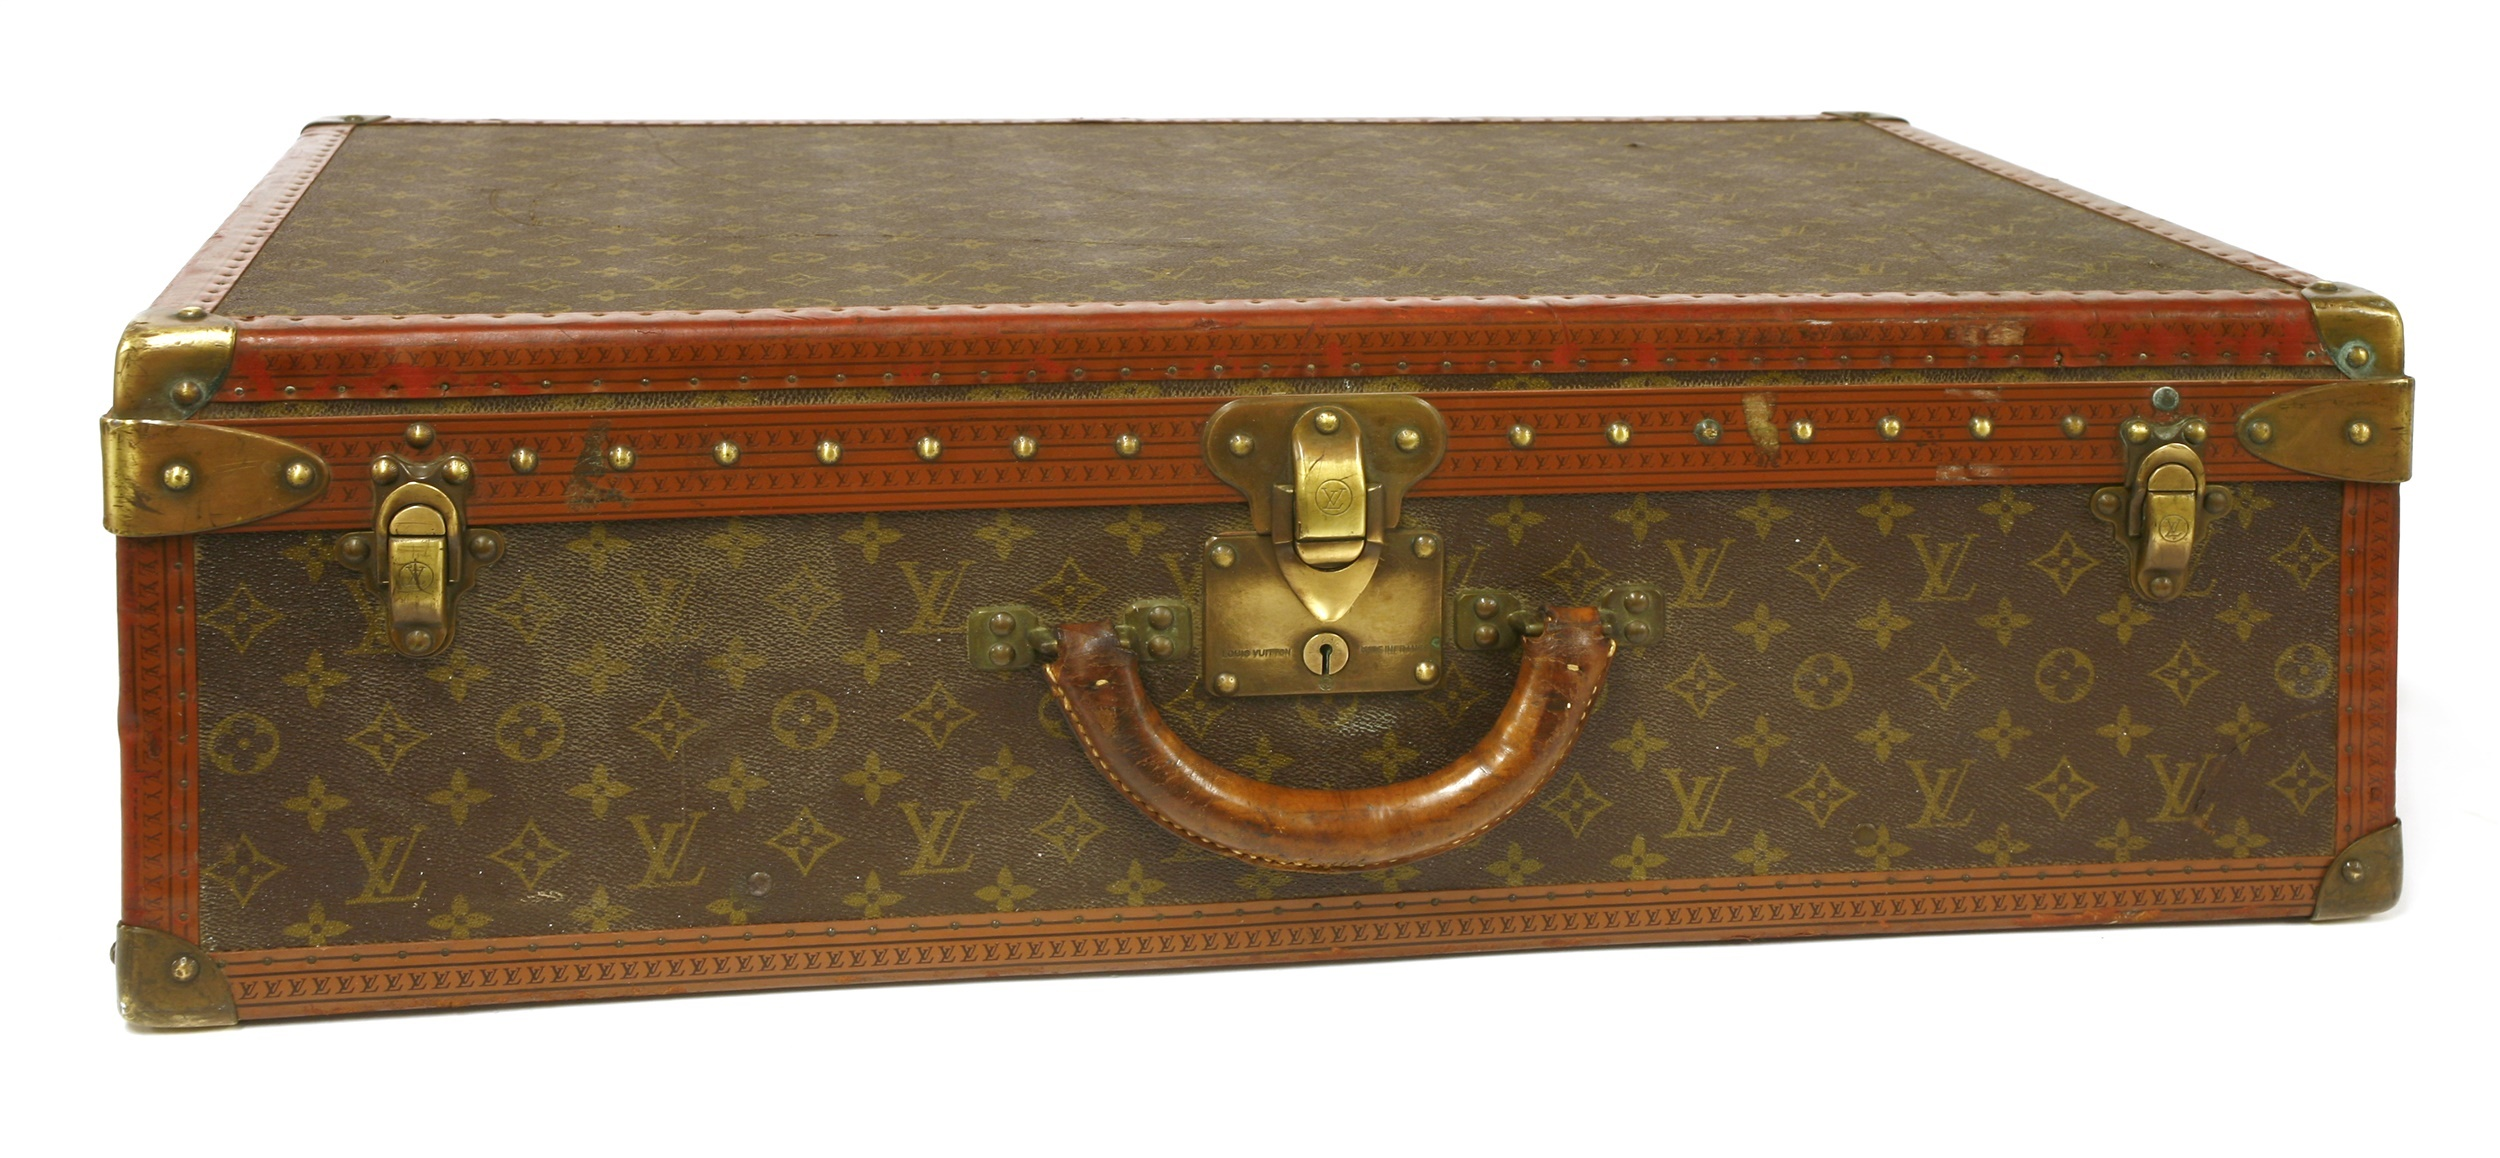 An early 20th century Louis Vuitton suitcase